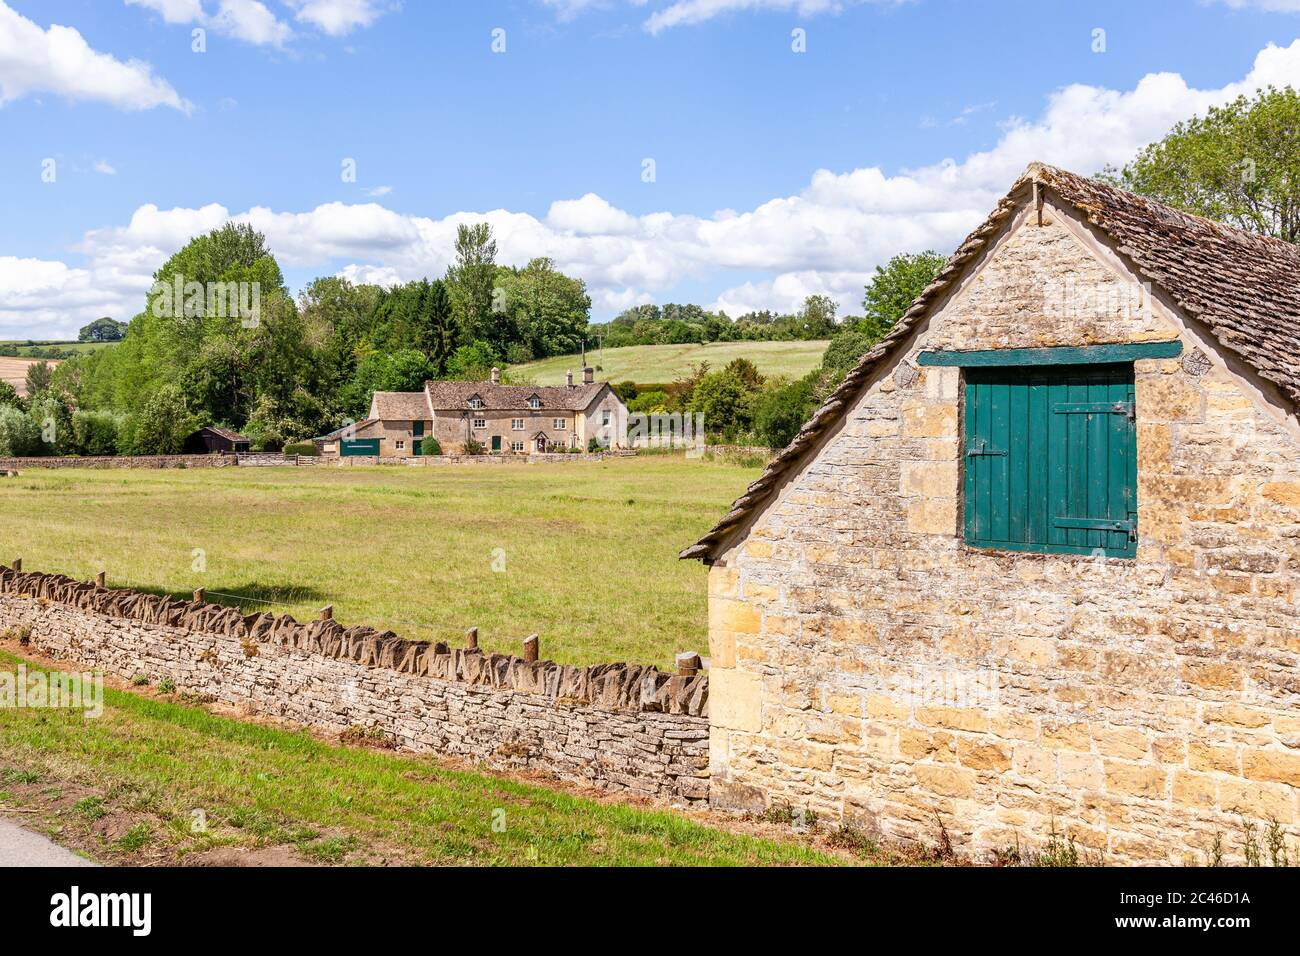 The Coln Valley - looking across to Yanworth Mill beside the River Coln near the Cotswold village of Yanworth, Gloucestershire UK Stock Photo